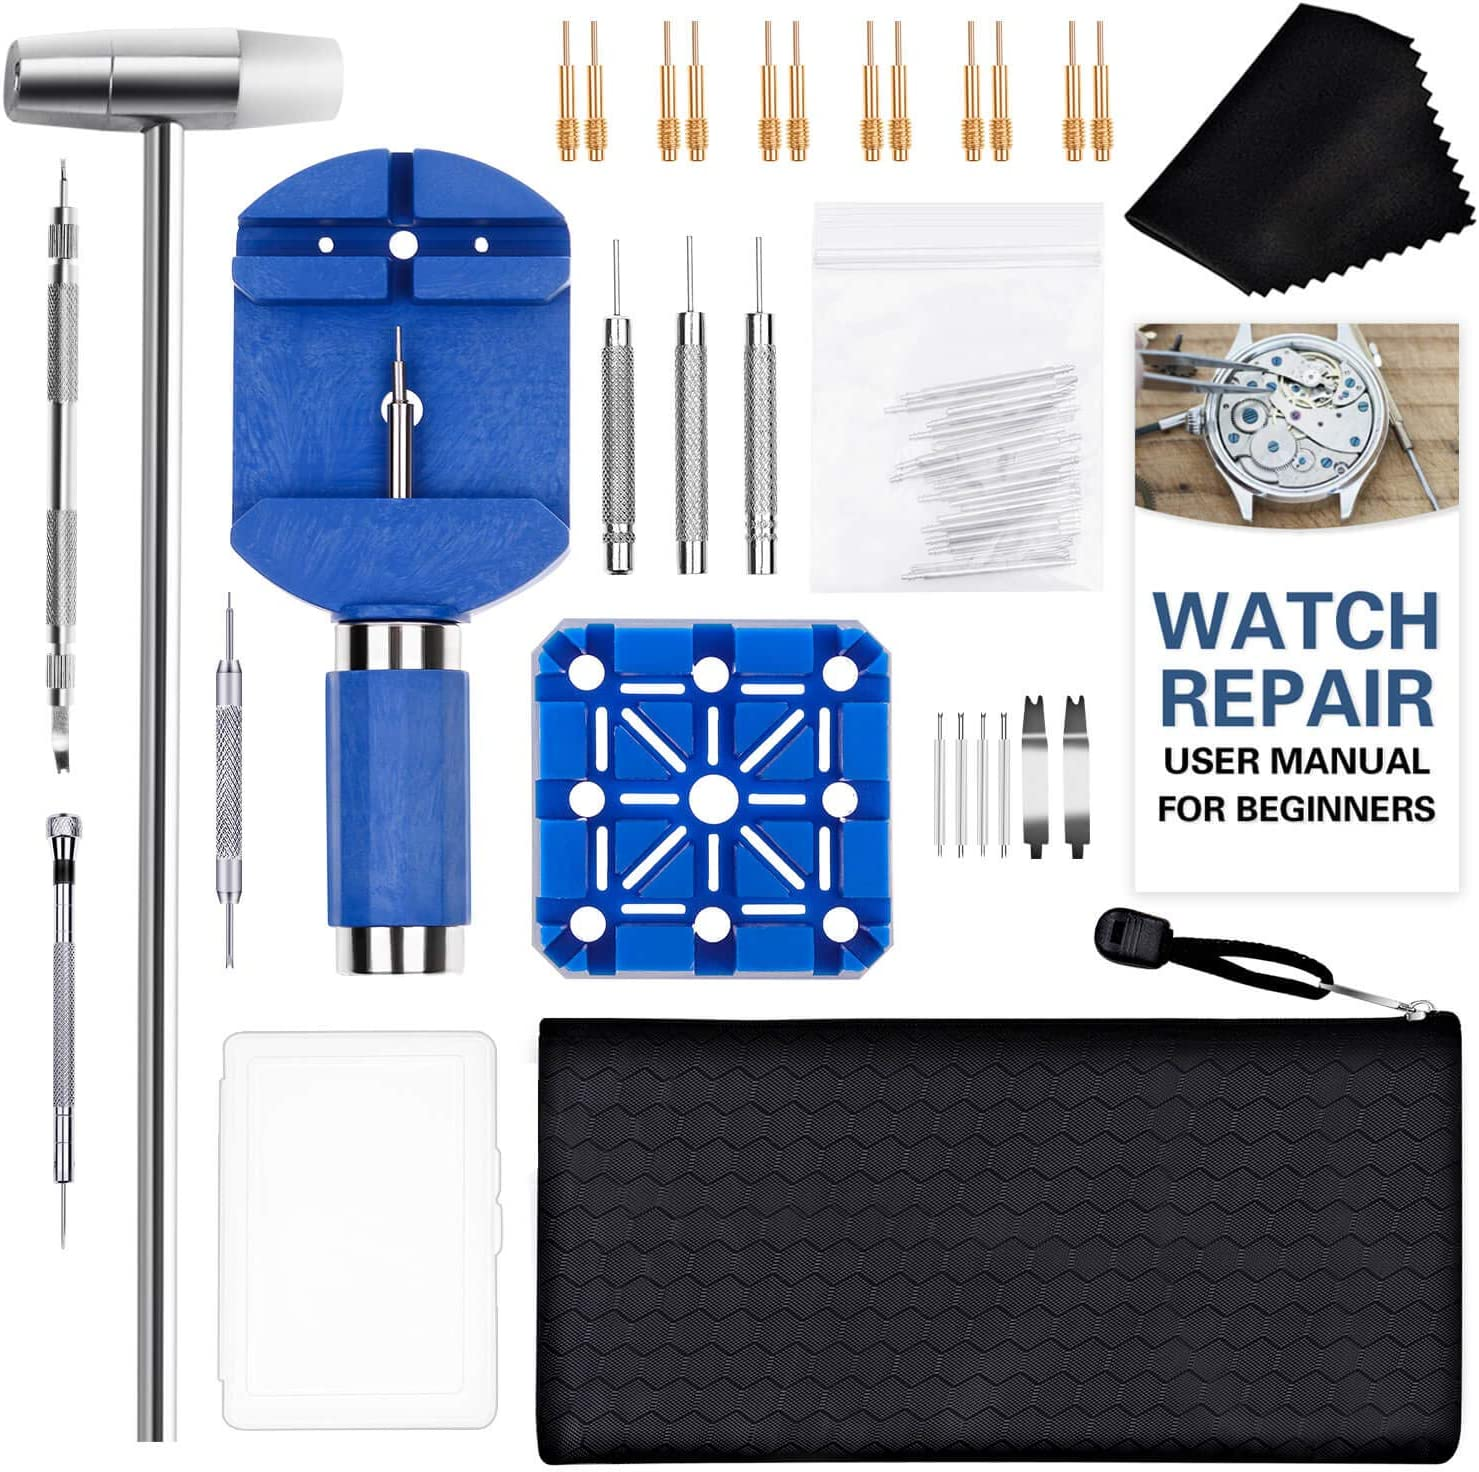 Watch Link Removal Tool Kit, Cridoz 51pcs Watch Repair Kit with Watch Adjustment Tool, Spring Bar Tool, Watch Pins and Other Watch Band Sizing Tools for Watch Resizing and Bracelet Link Remover